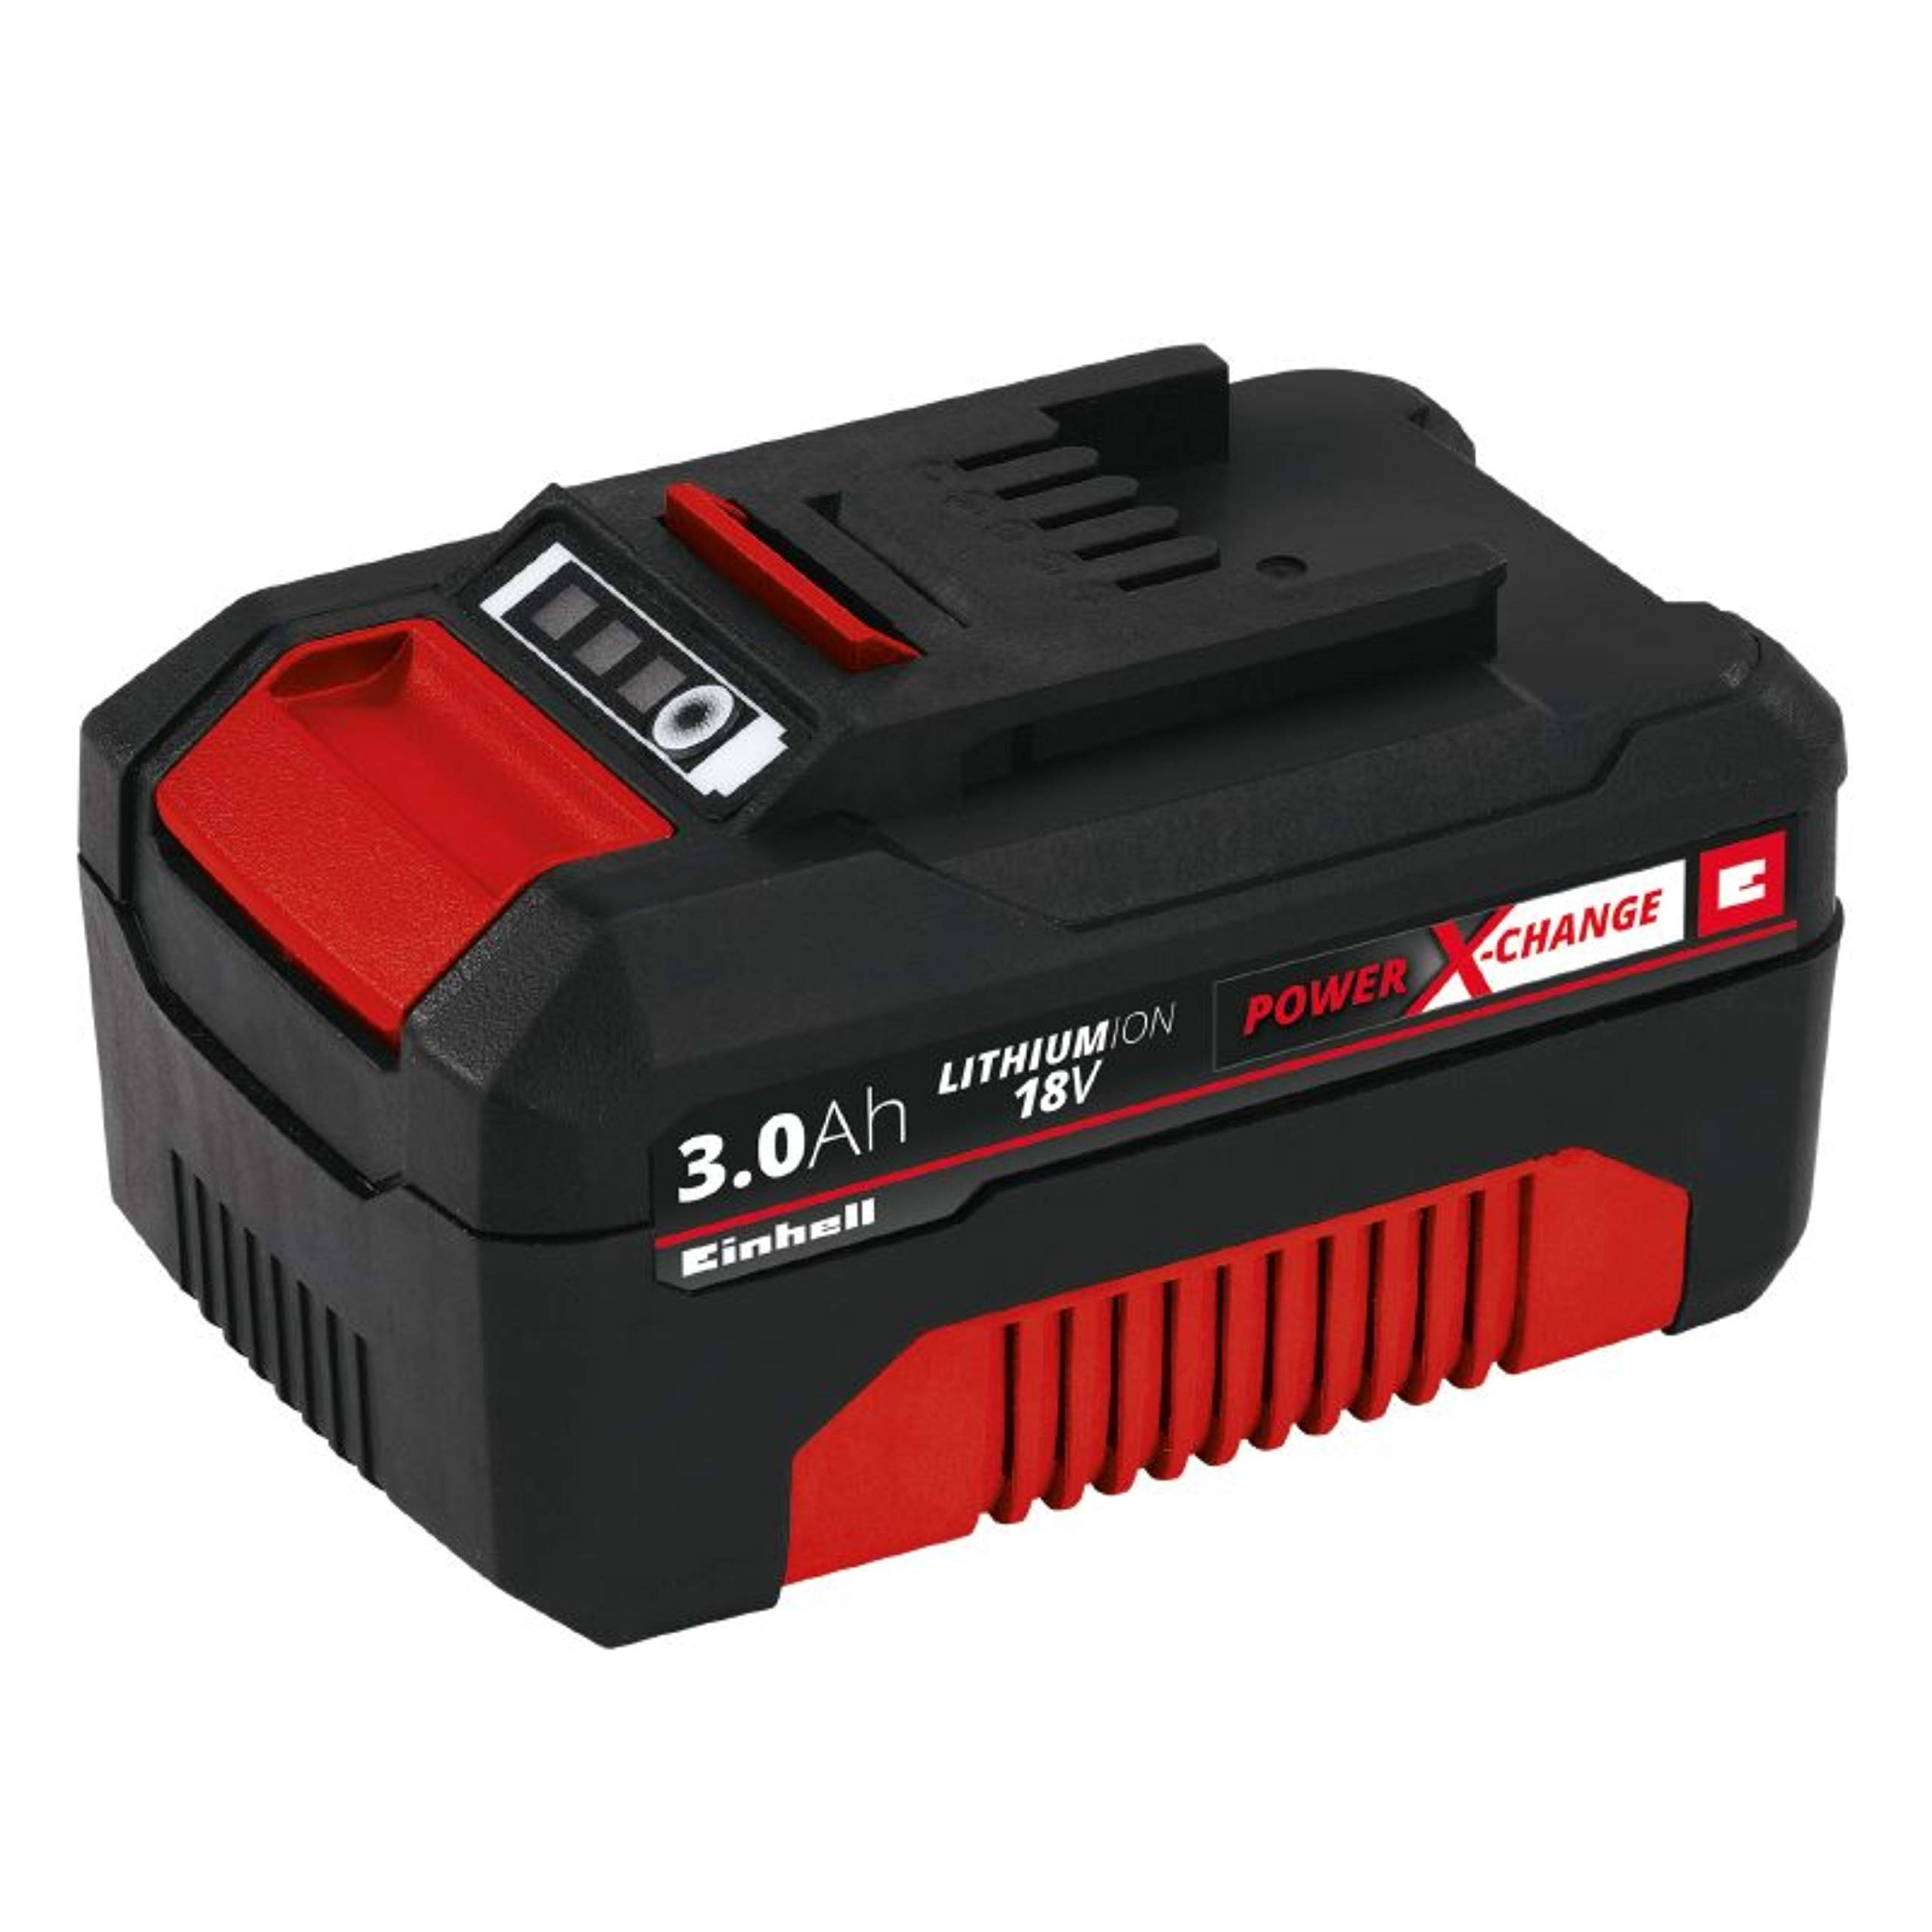 Einhell 18-Volt 3.0-Ah Lithium-Ion Power X-Change Battery